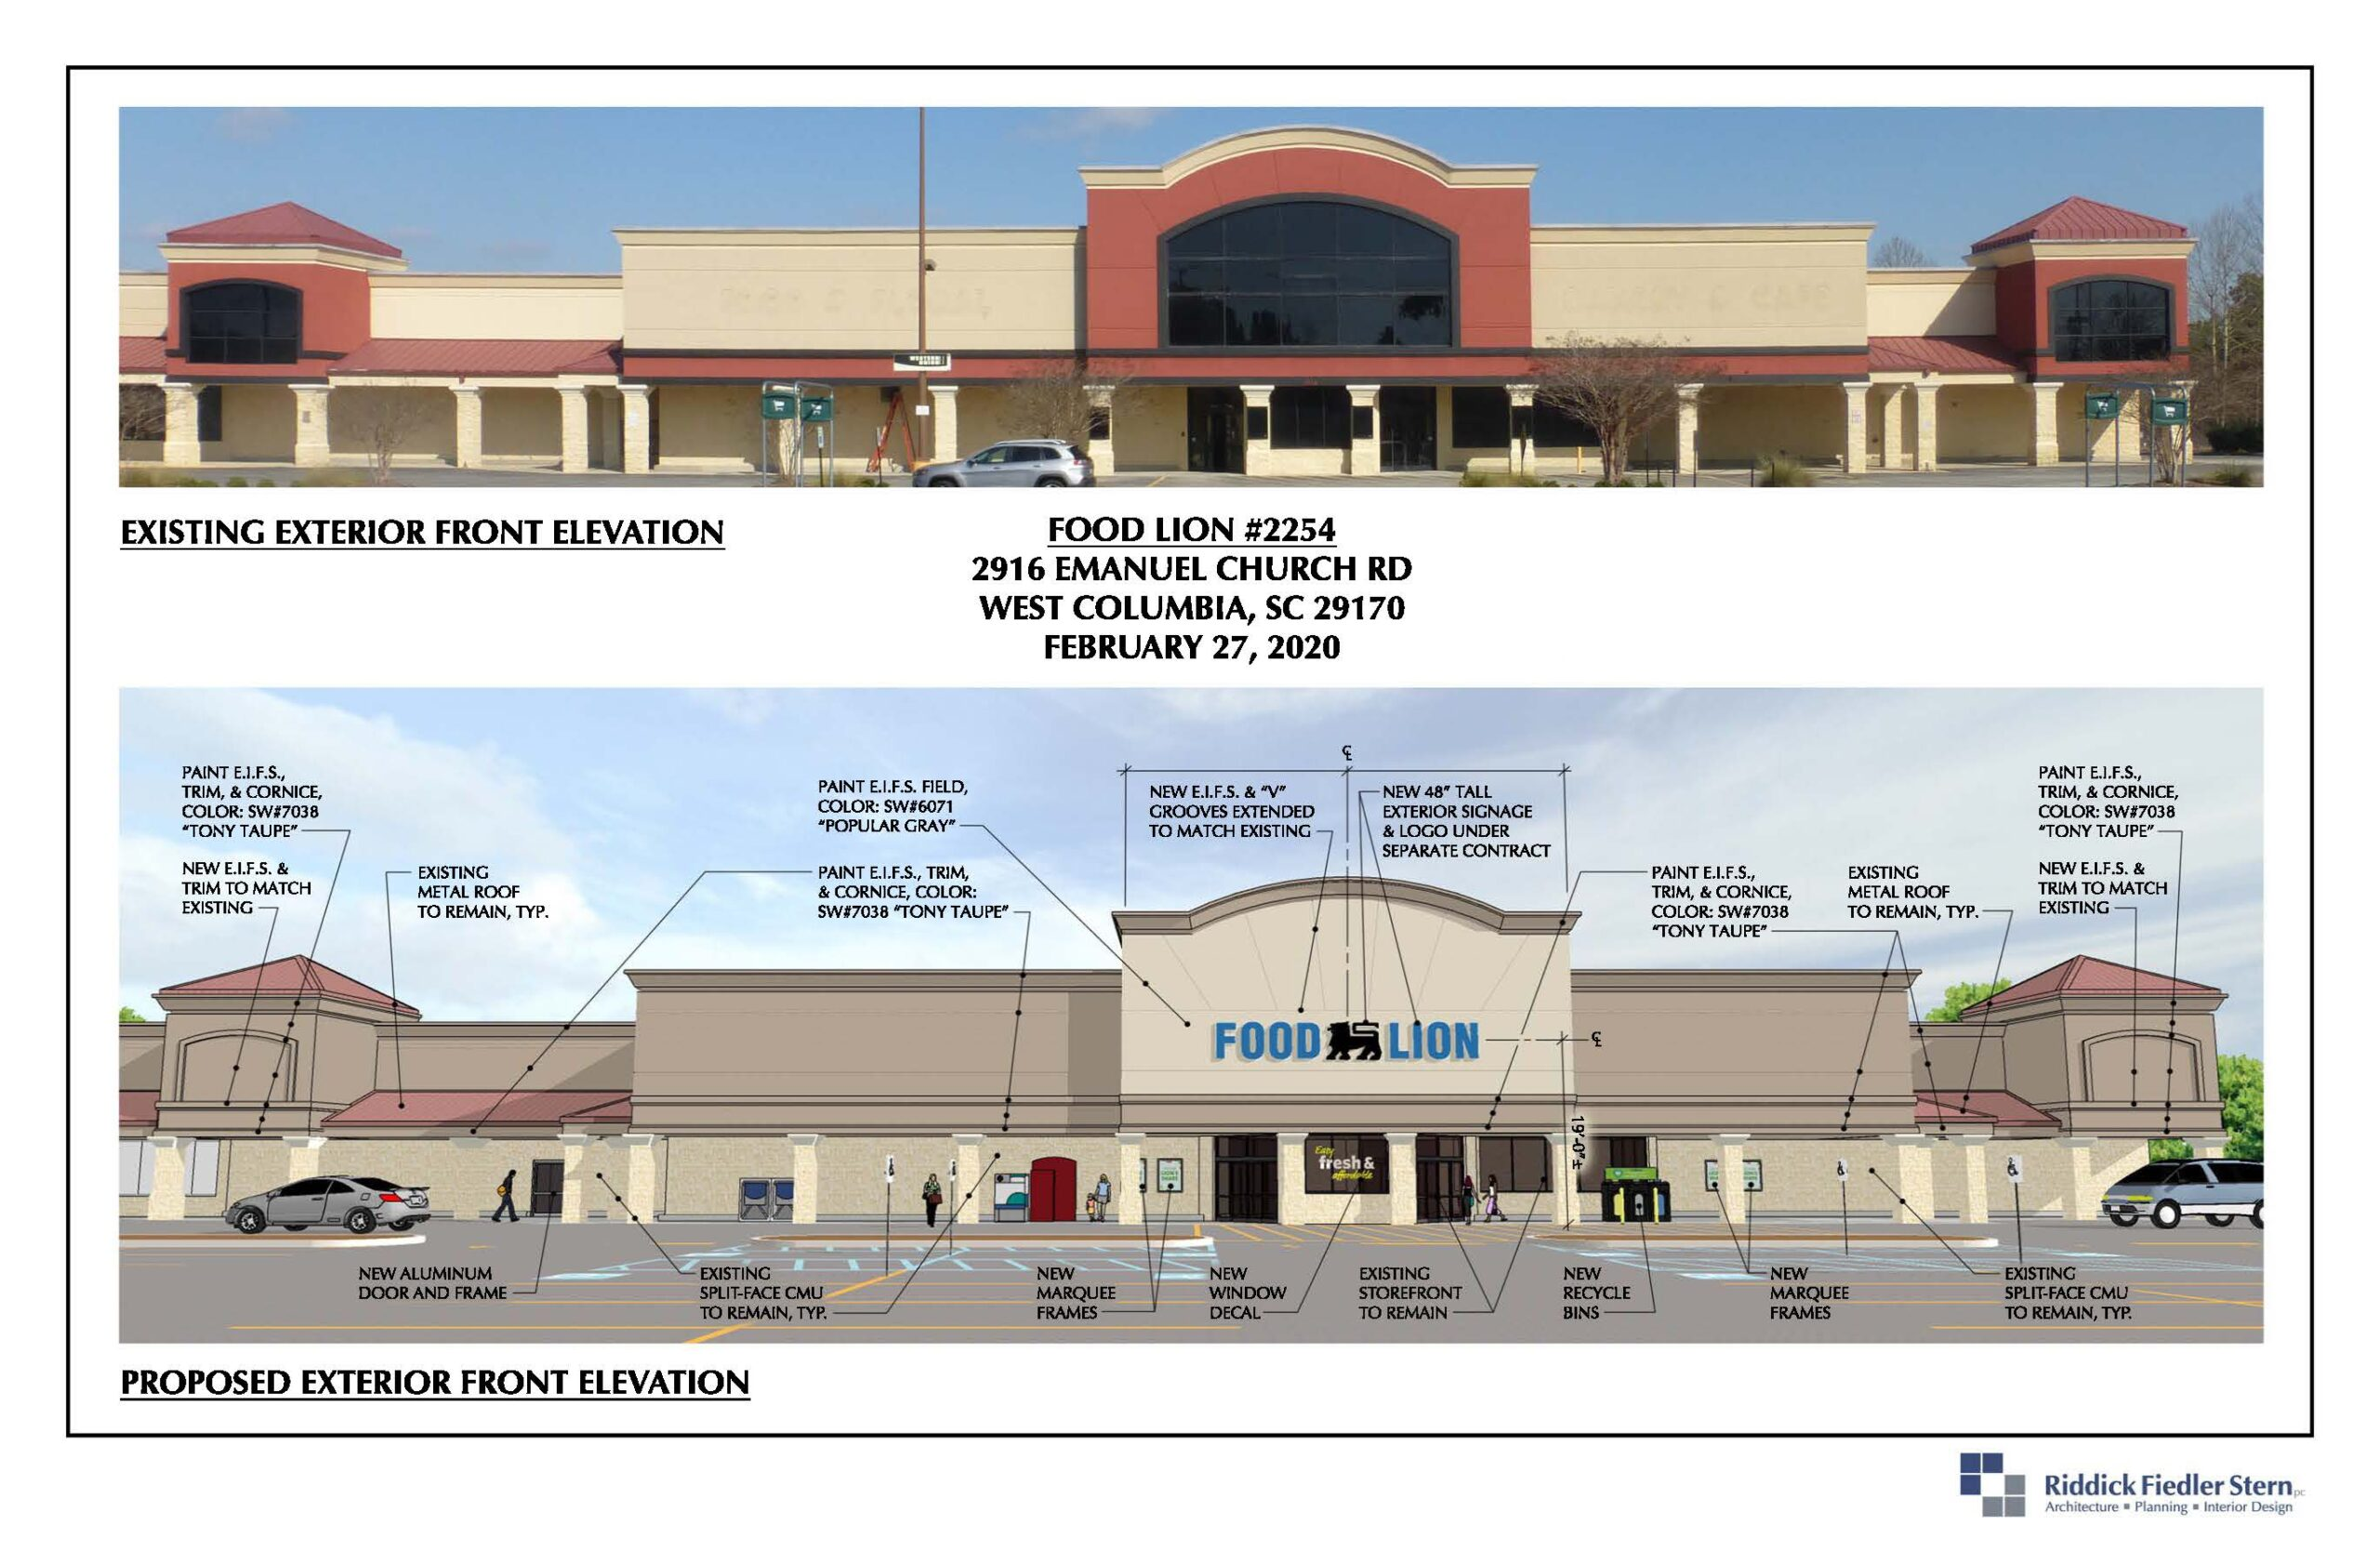 Food Lion #2254 Acquisition